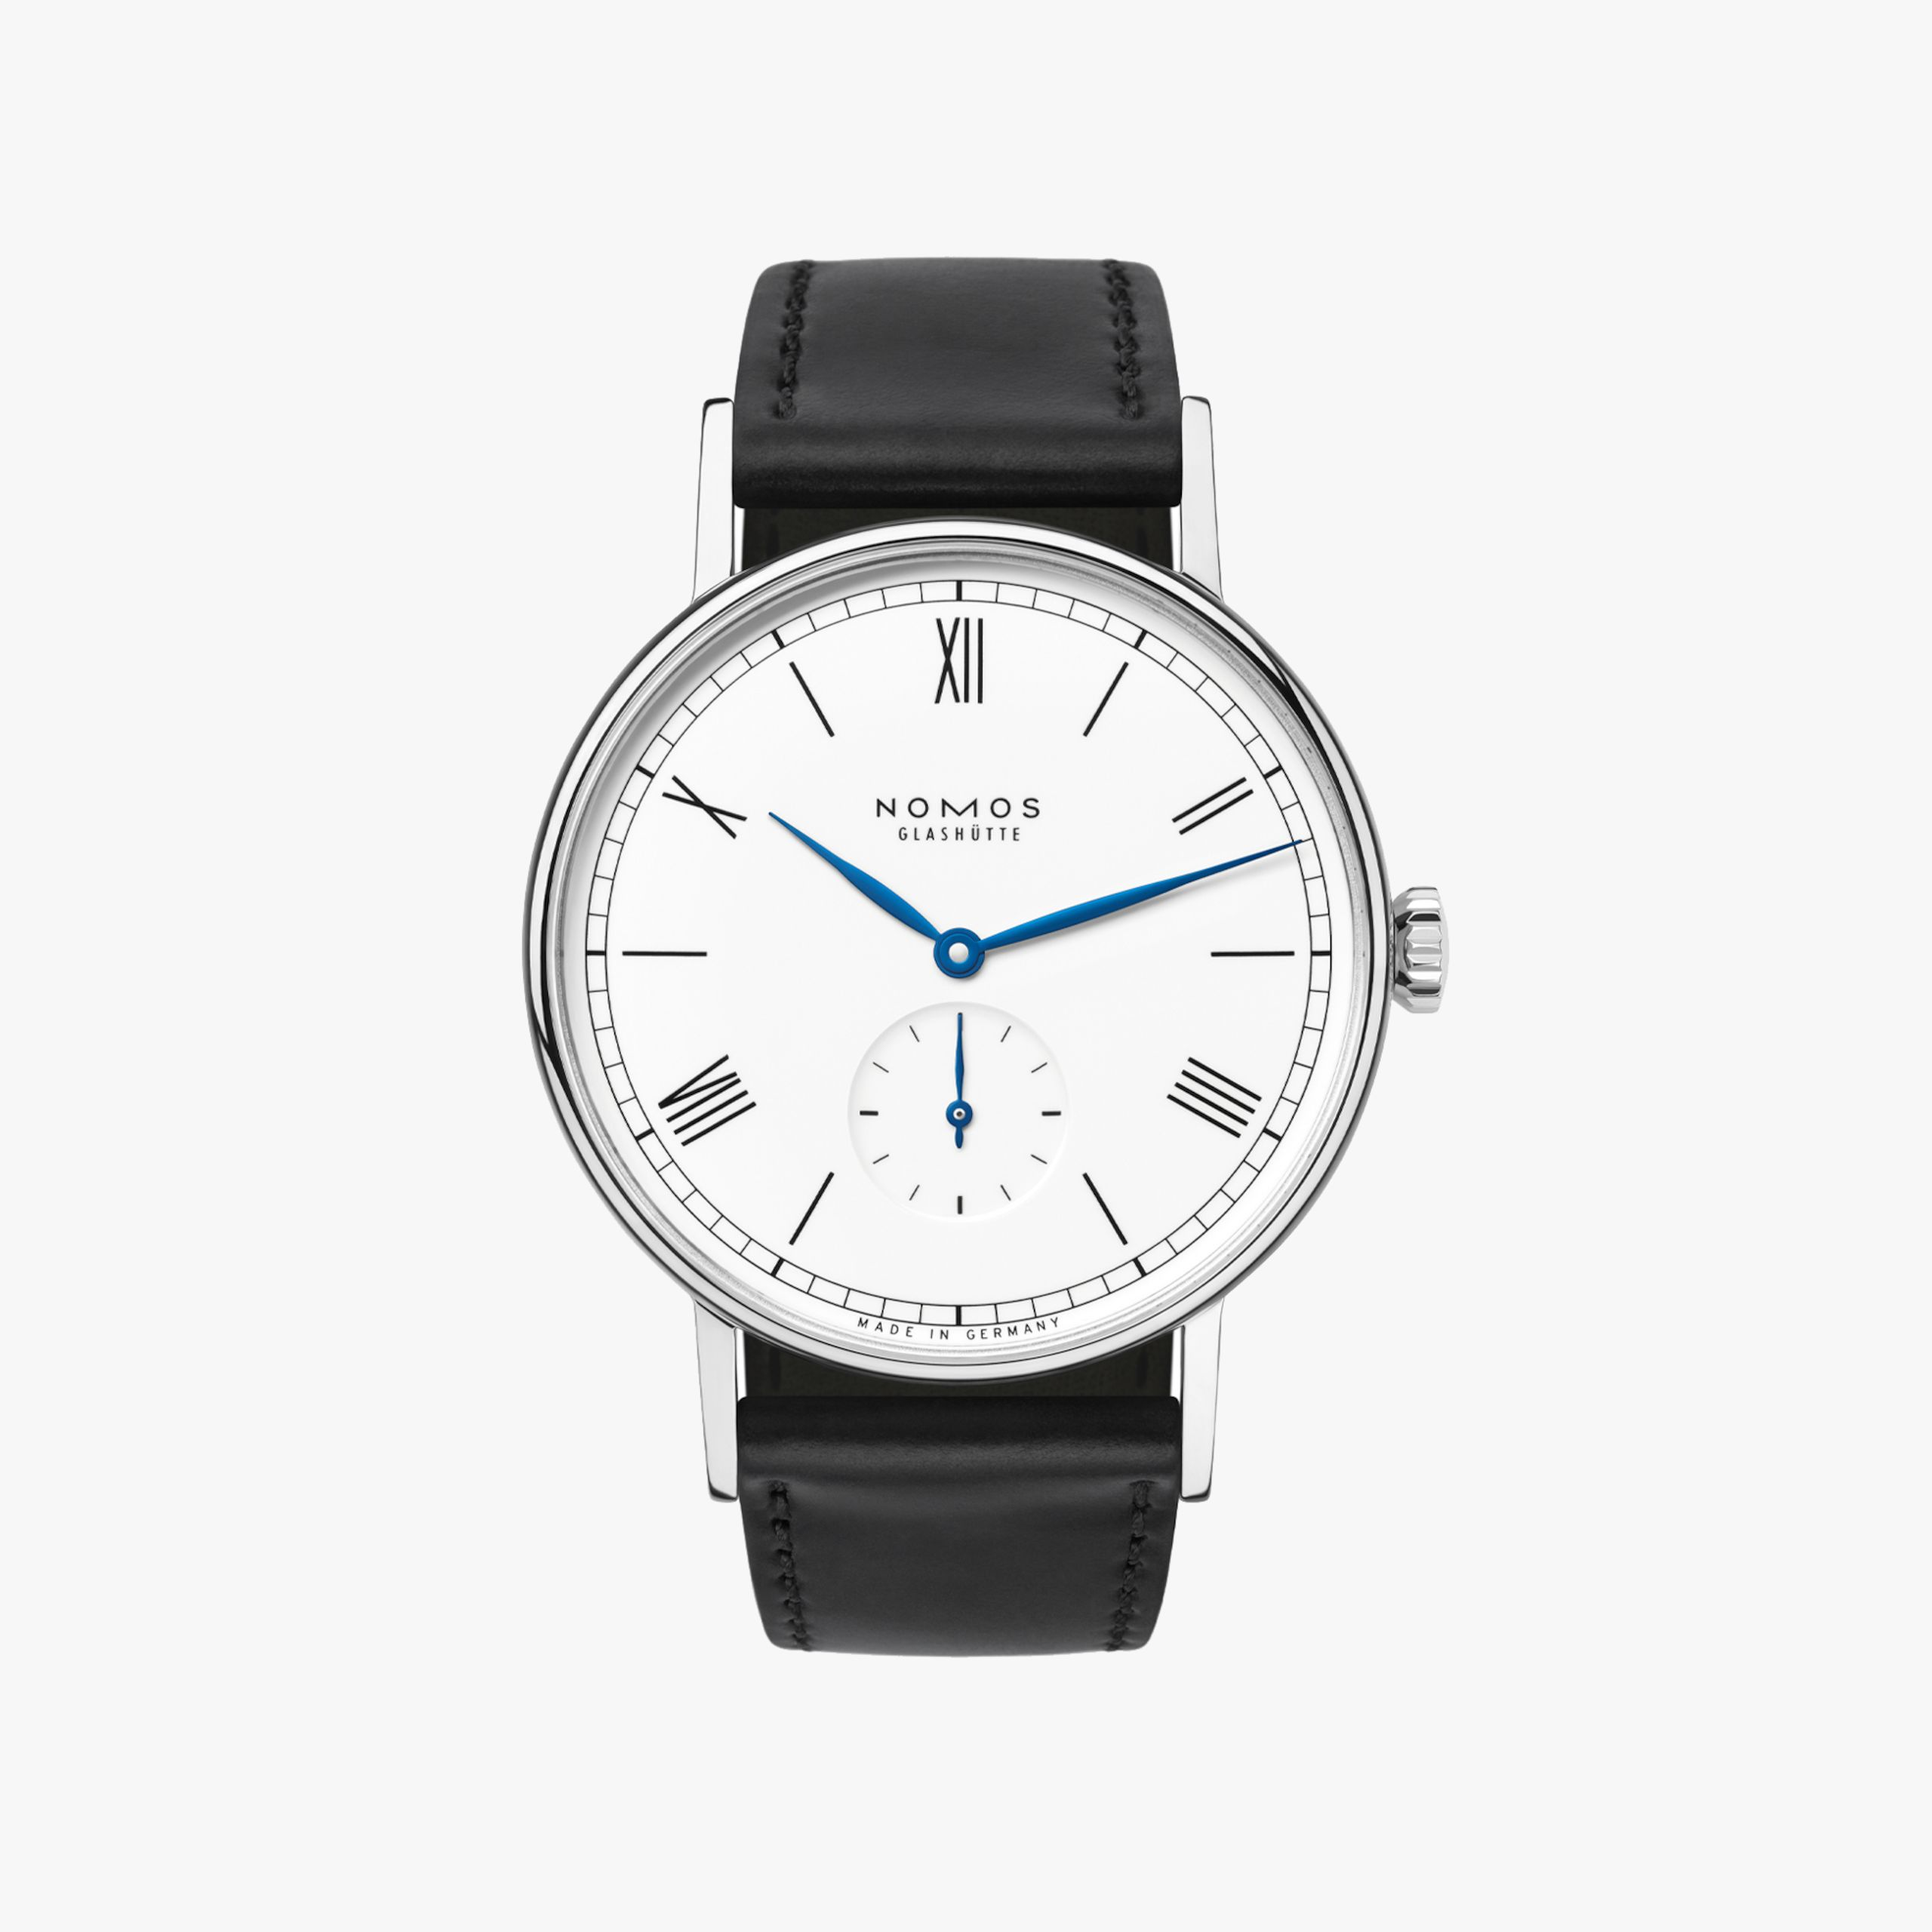 https://cdn.nomos-glashuette.com/media/image/0f/95/a0/2560xauto-q80-bg238238238/0205_s2_ludwig_175_years_watchmaking_gh_2d_front-masked.jpg